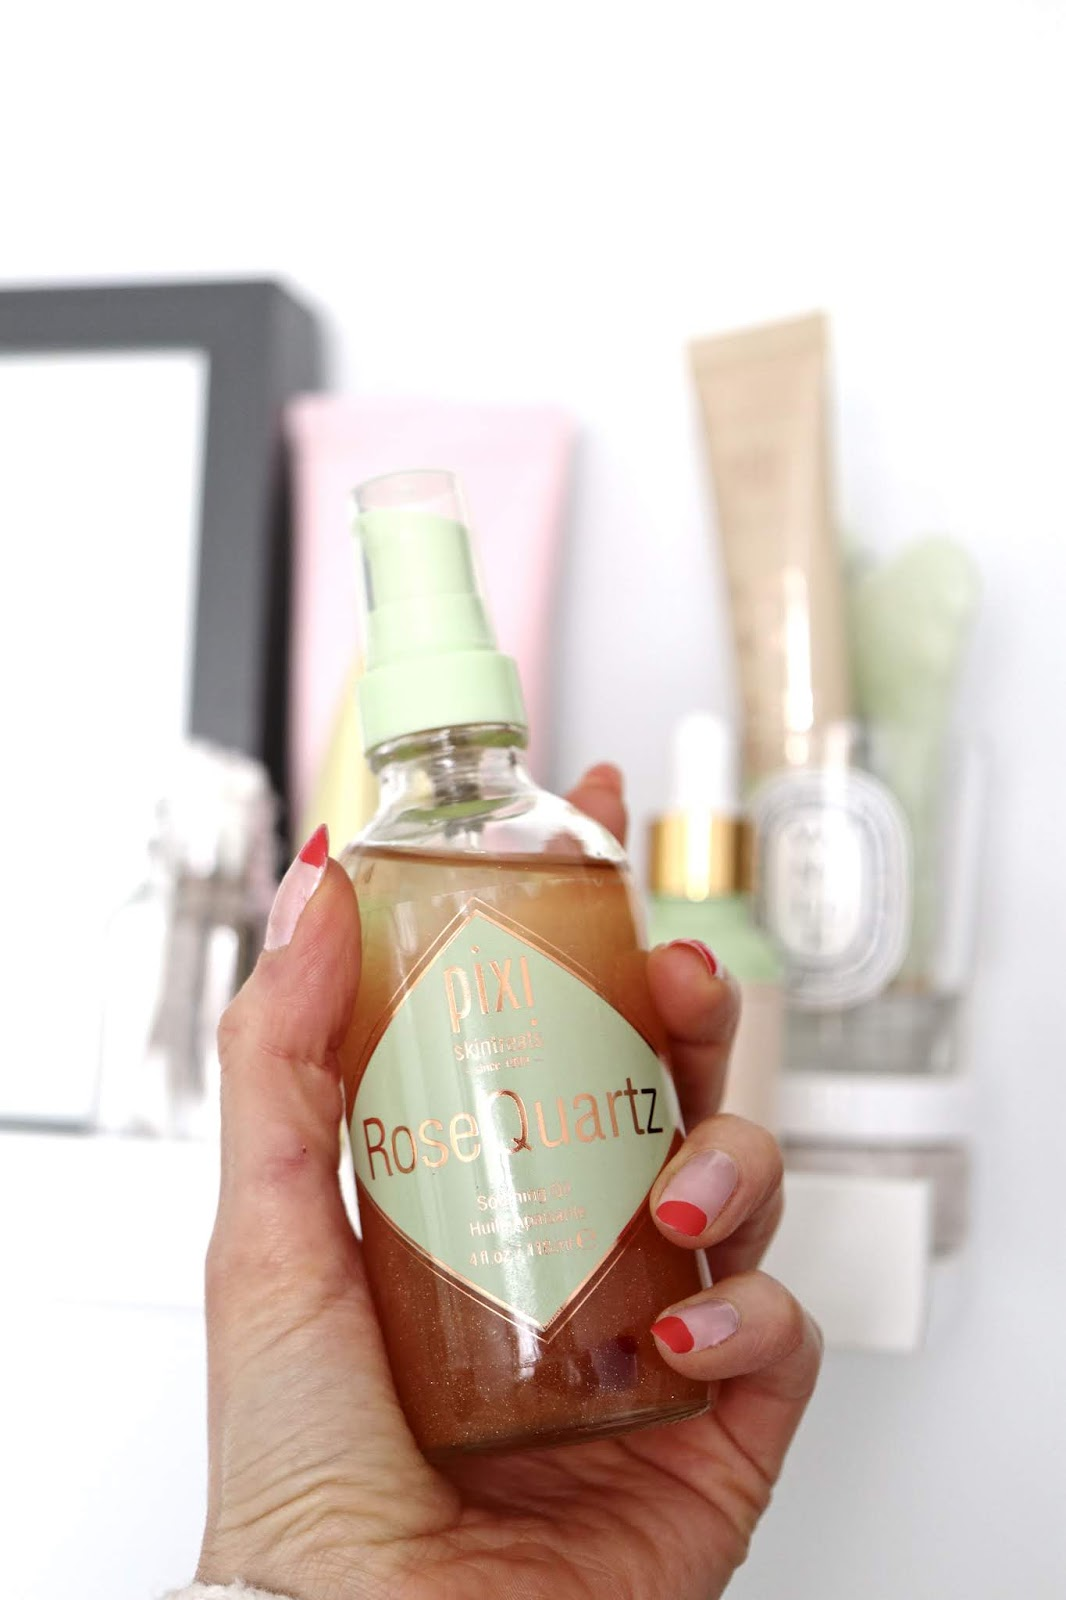 Pixi Beauty Spring collection rose quartz soothing oil